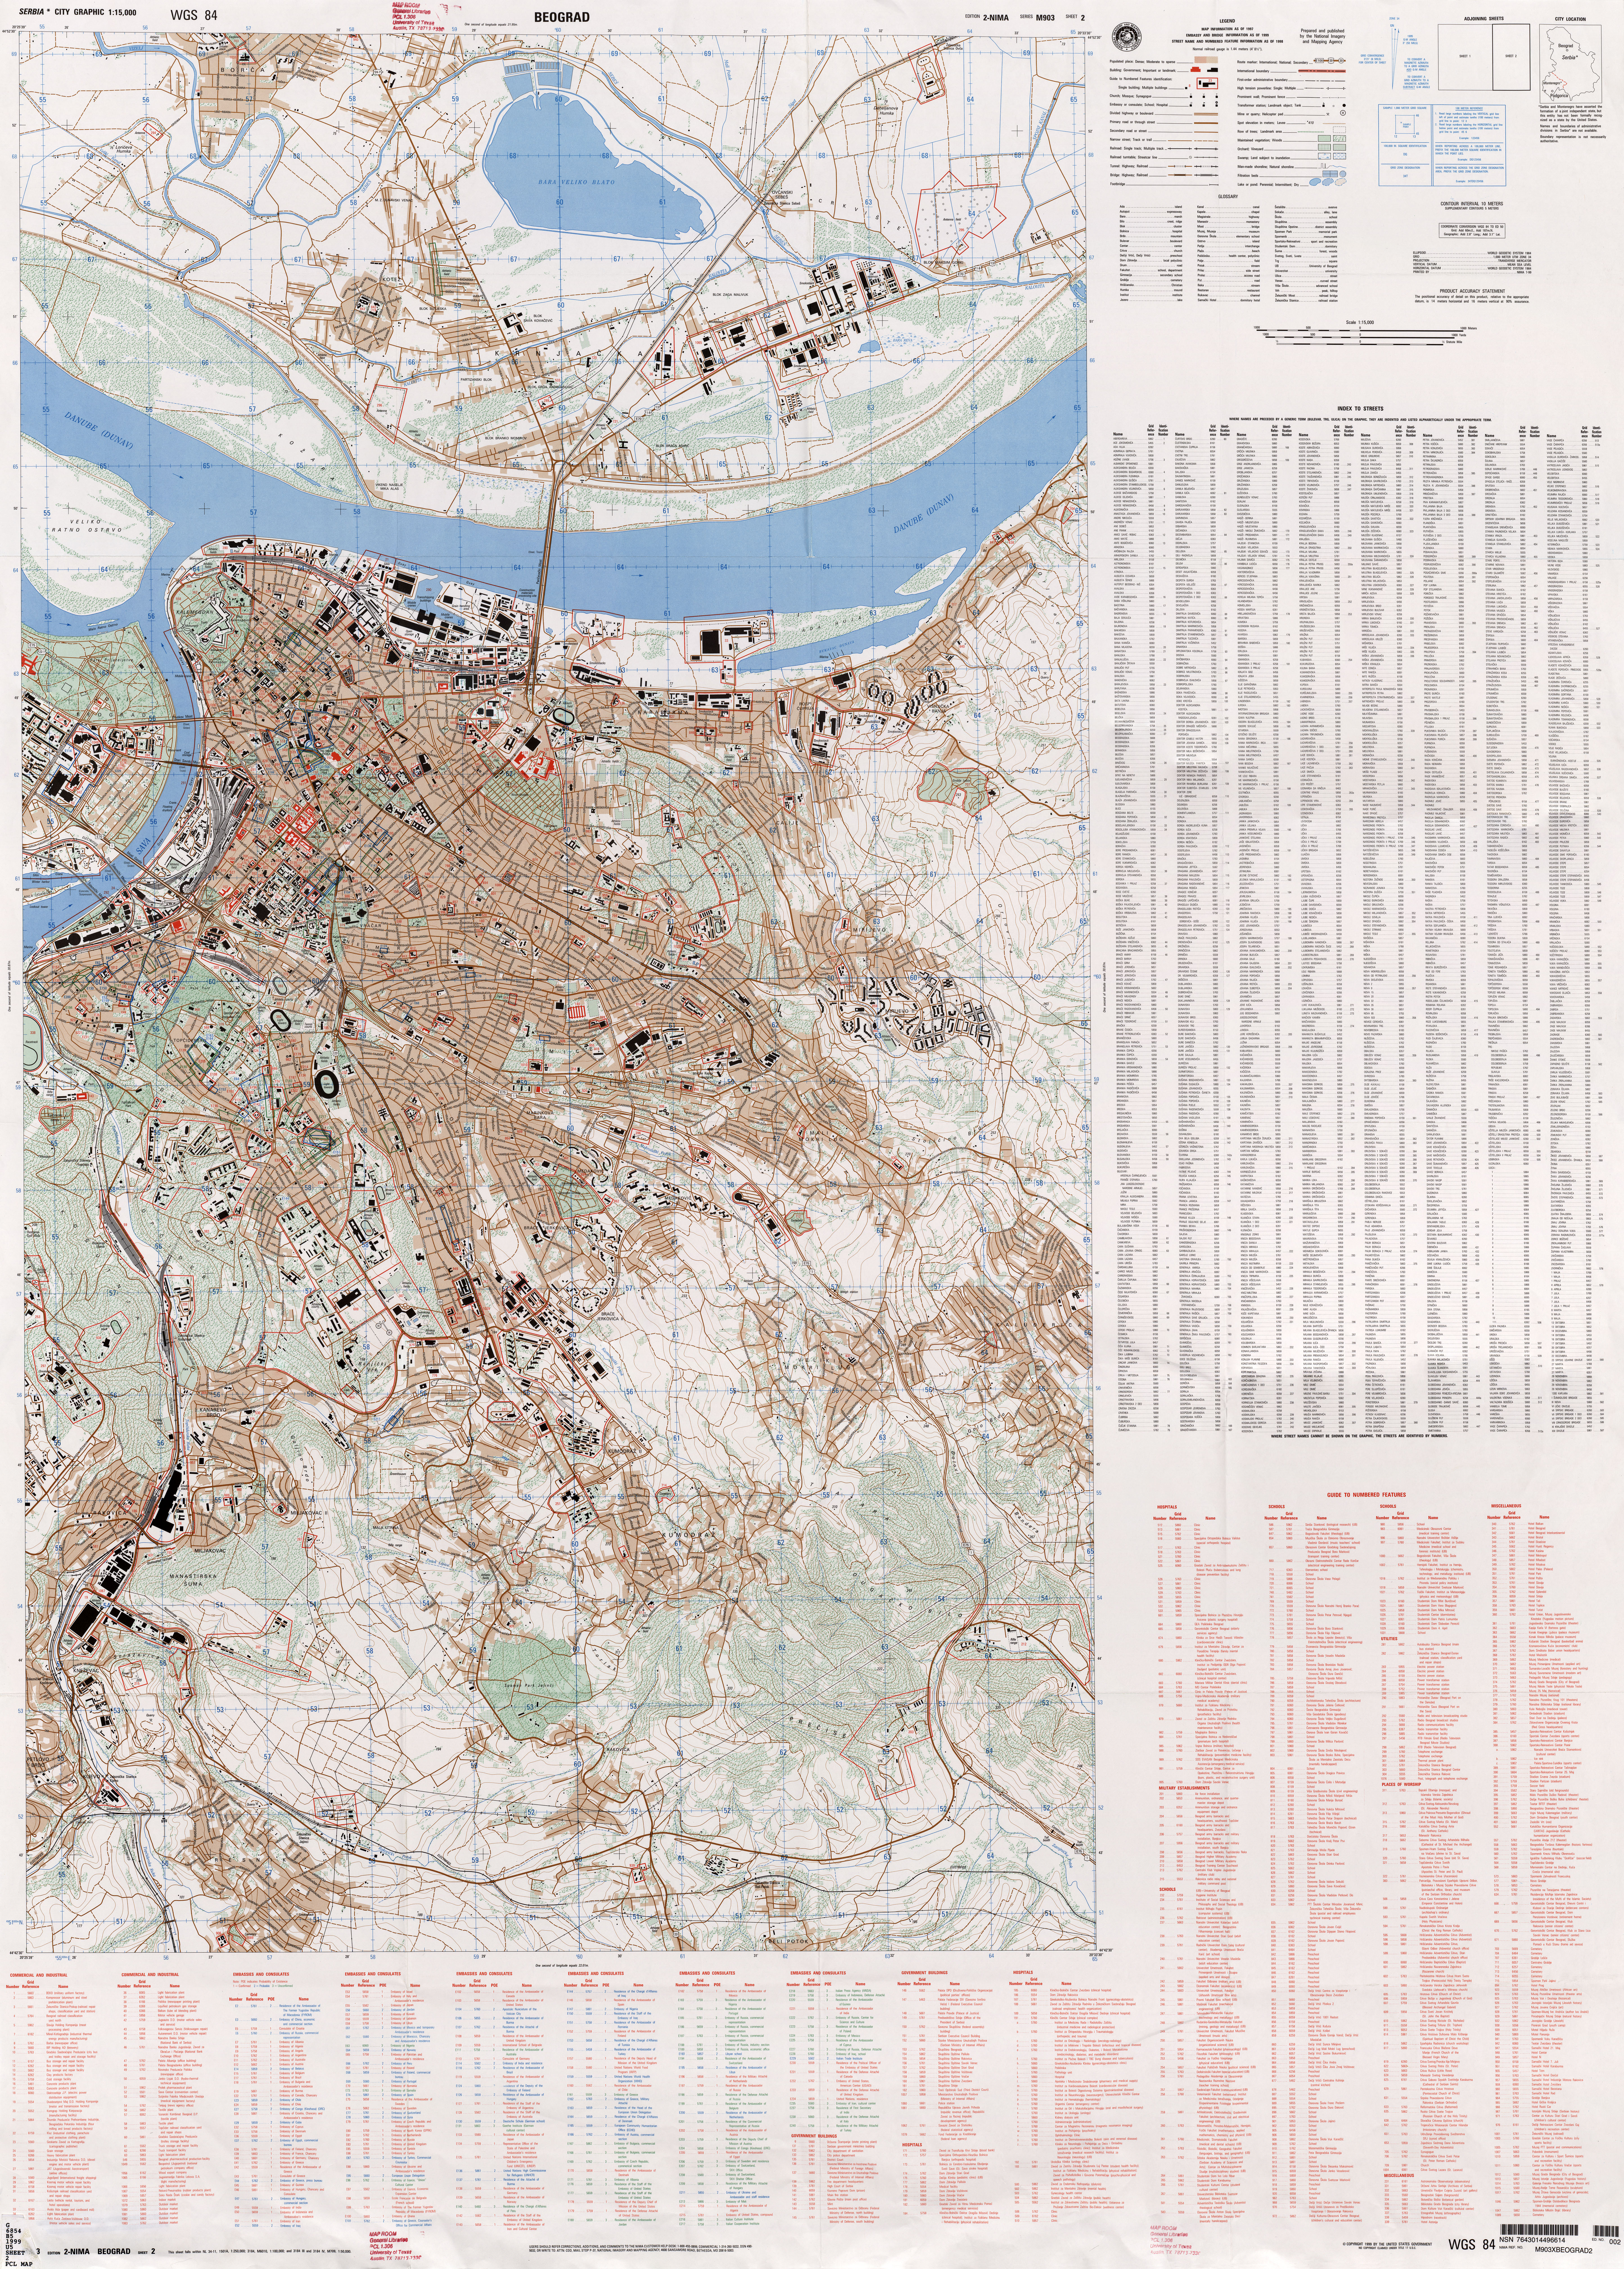 Serbia Maps - Perry-Castañeda Map Collection - UT Library Online